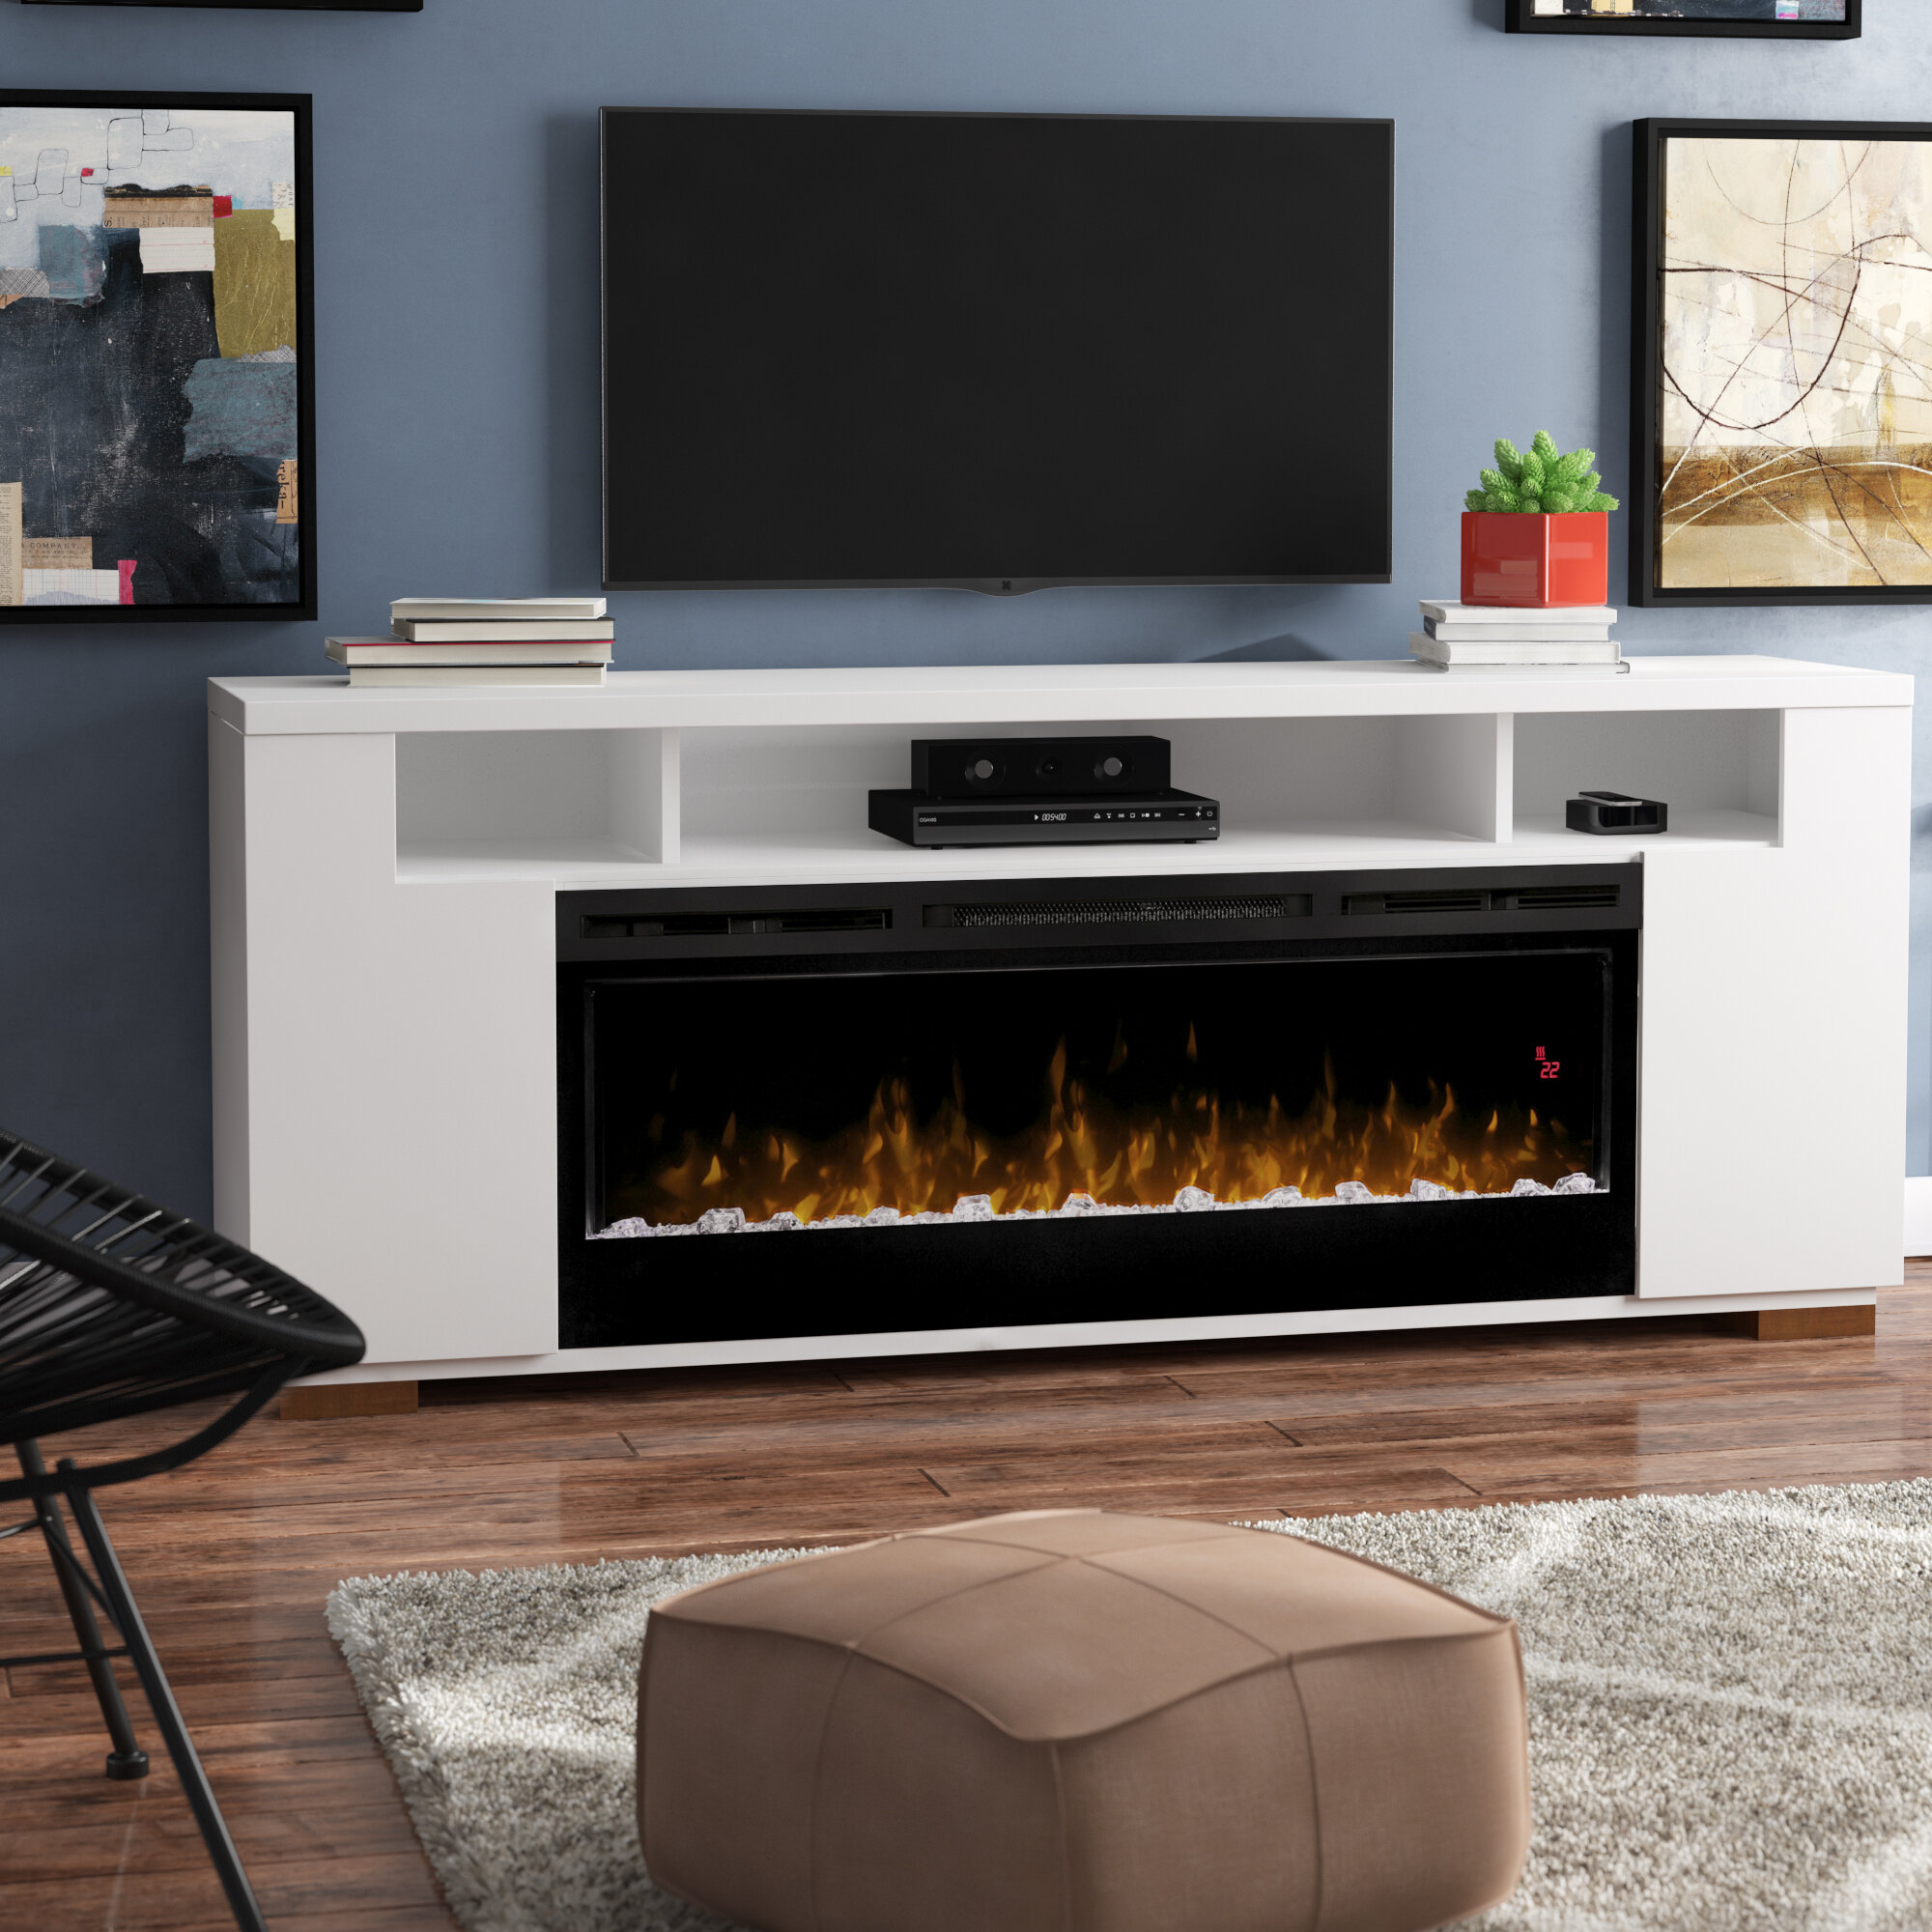 Miraculous Barnett Tv Stand For Tvs Up To 85 Inches With Fireplace Included Gmtry Best Dining Table And Chair Ideas Images Gmtryco